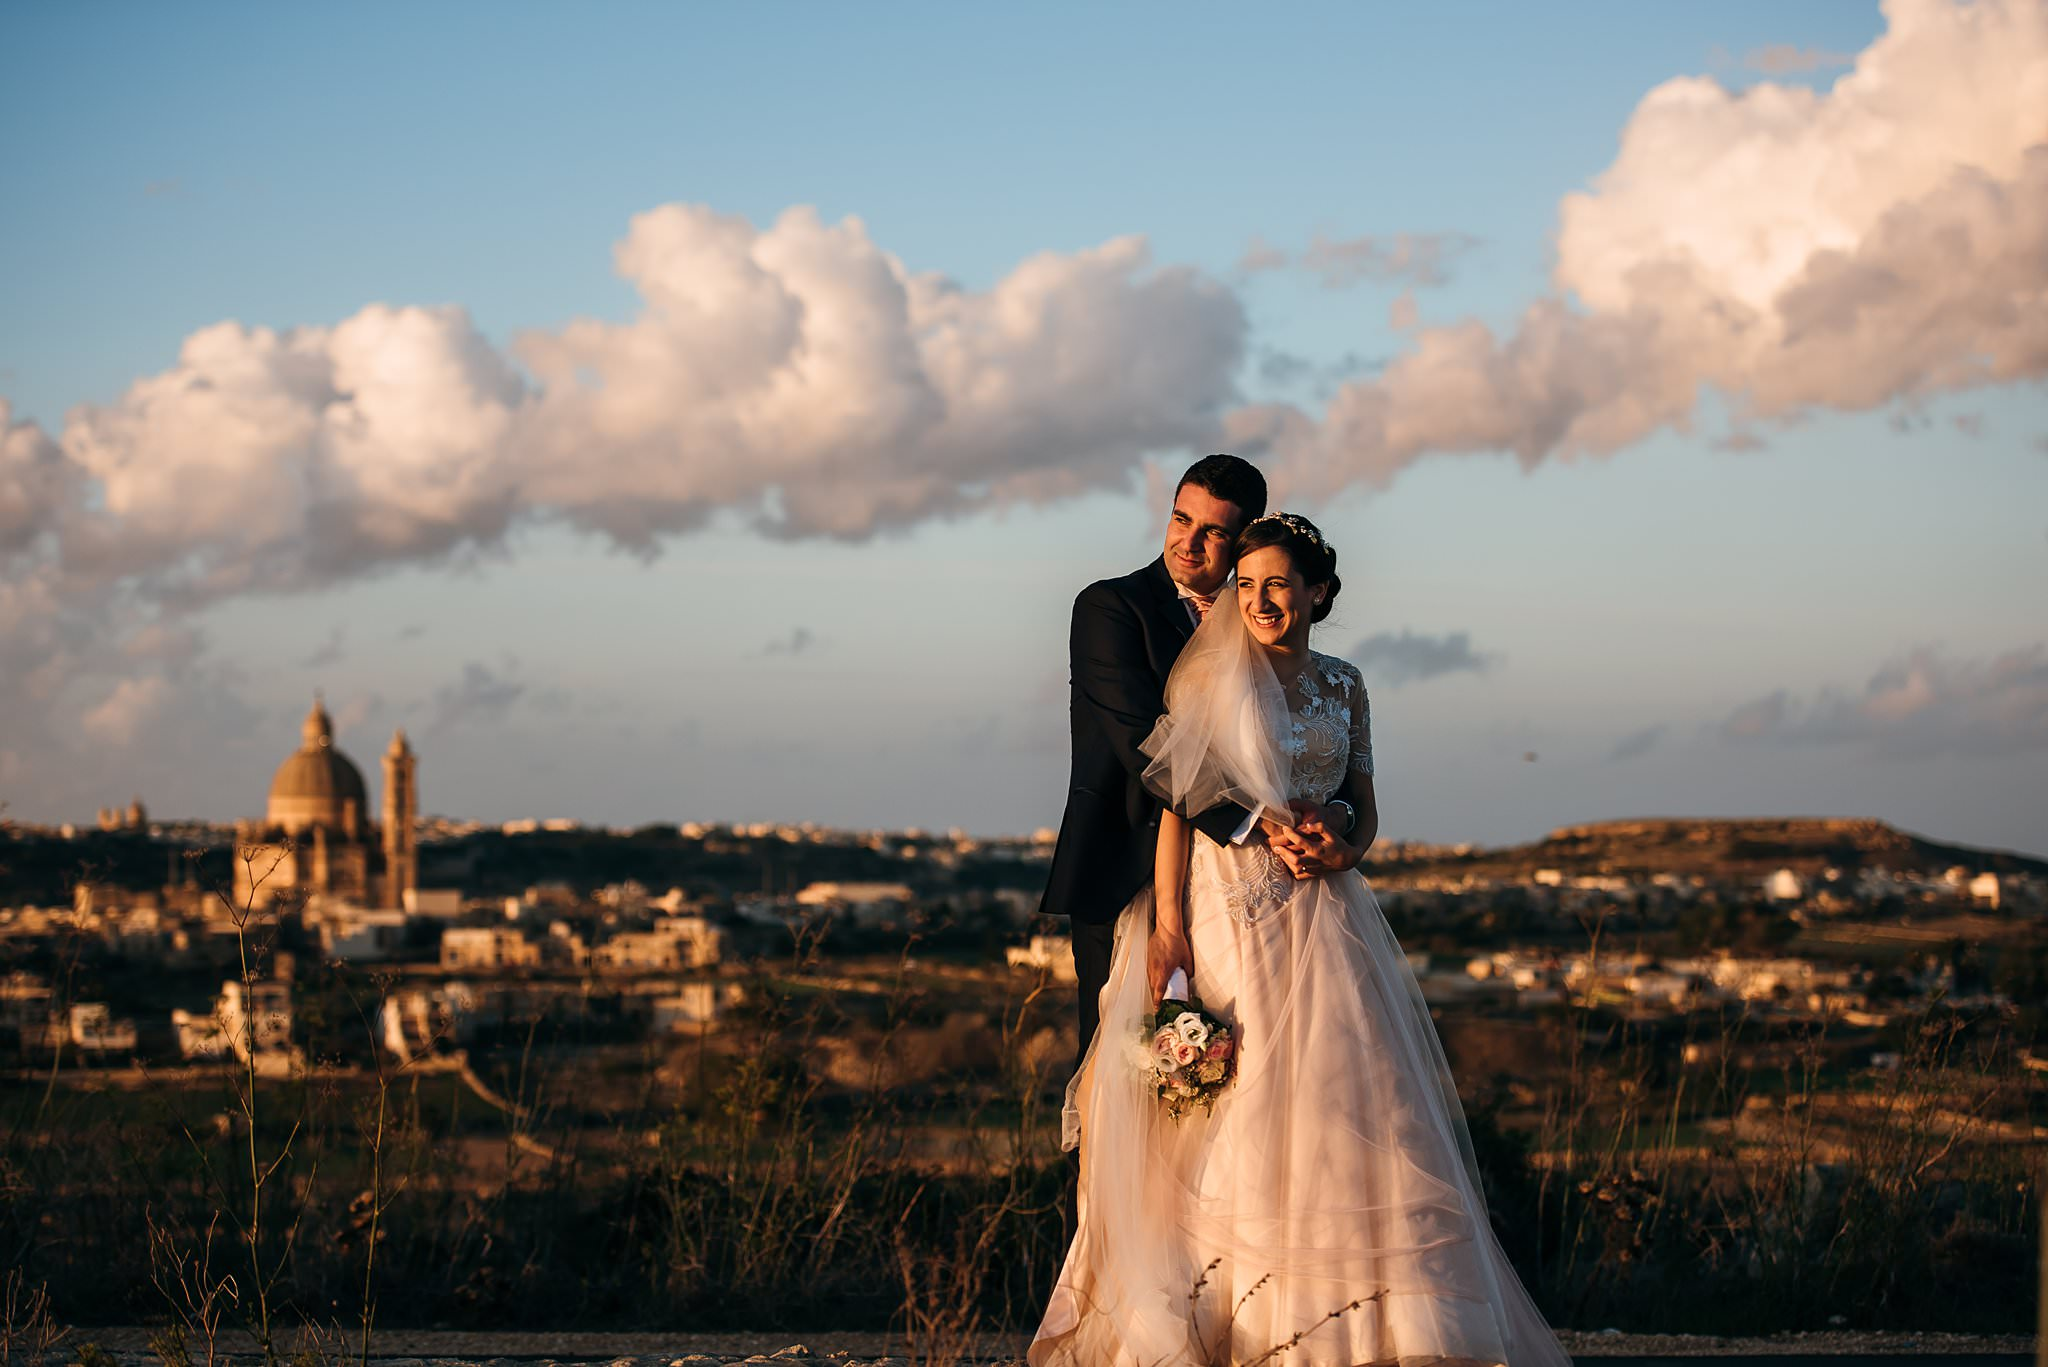 Wedding in Malta - Shane P. Watts Photography